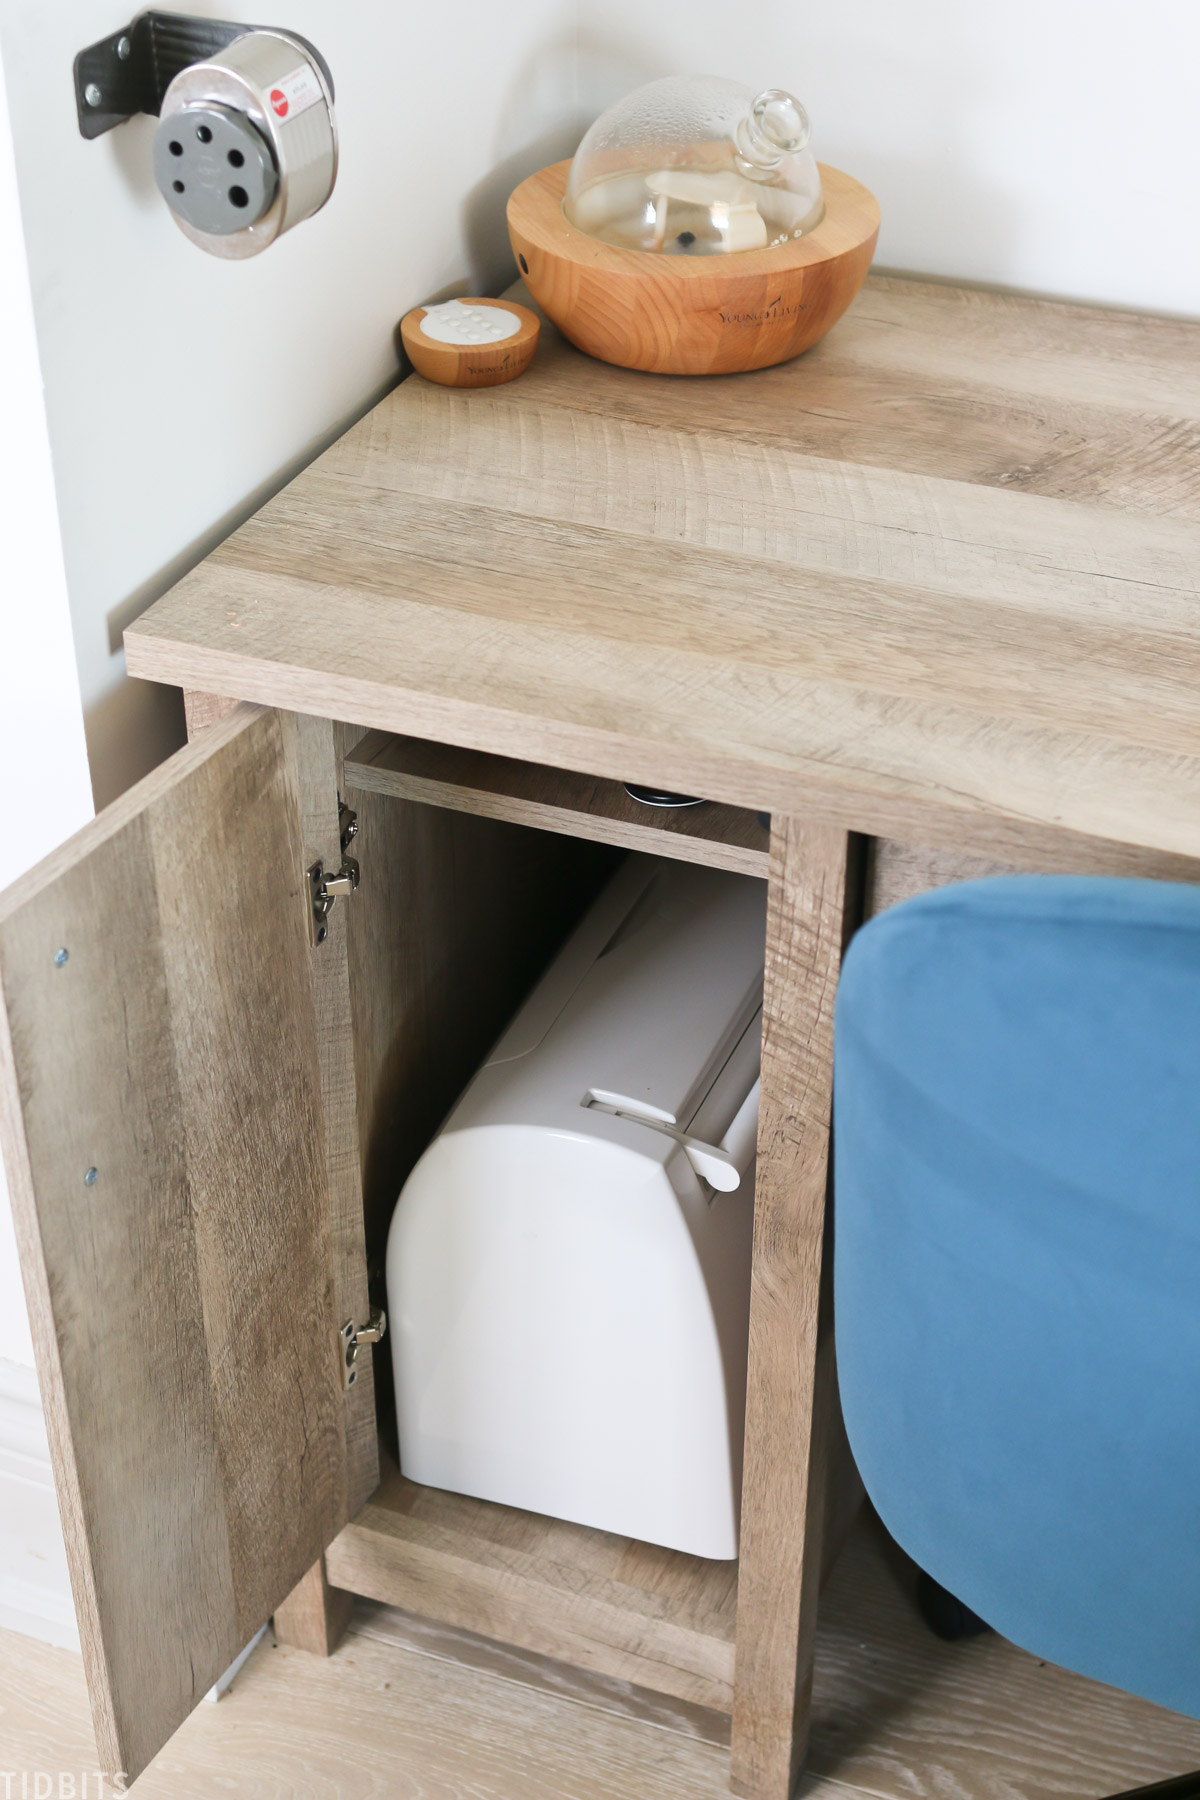 desk cupboard is opened to show that a sewing machine is being stored inside